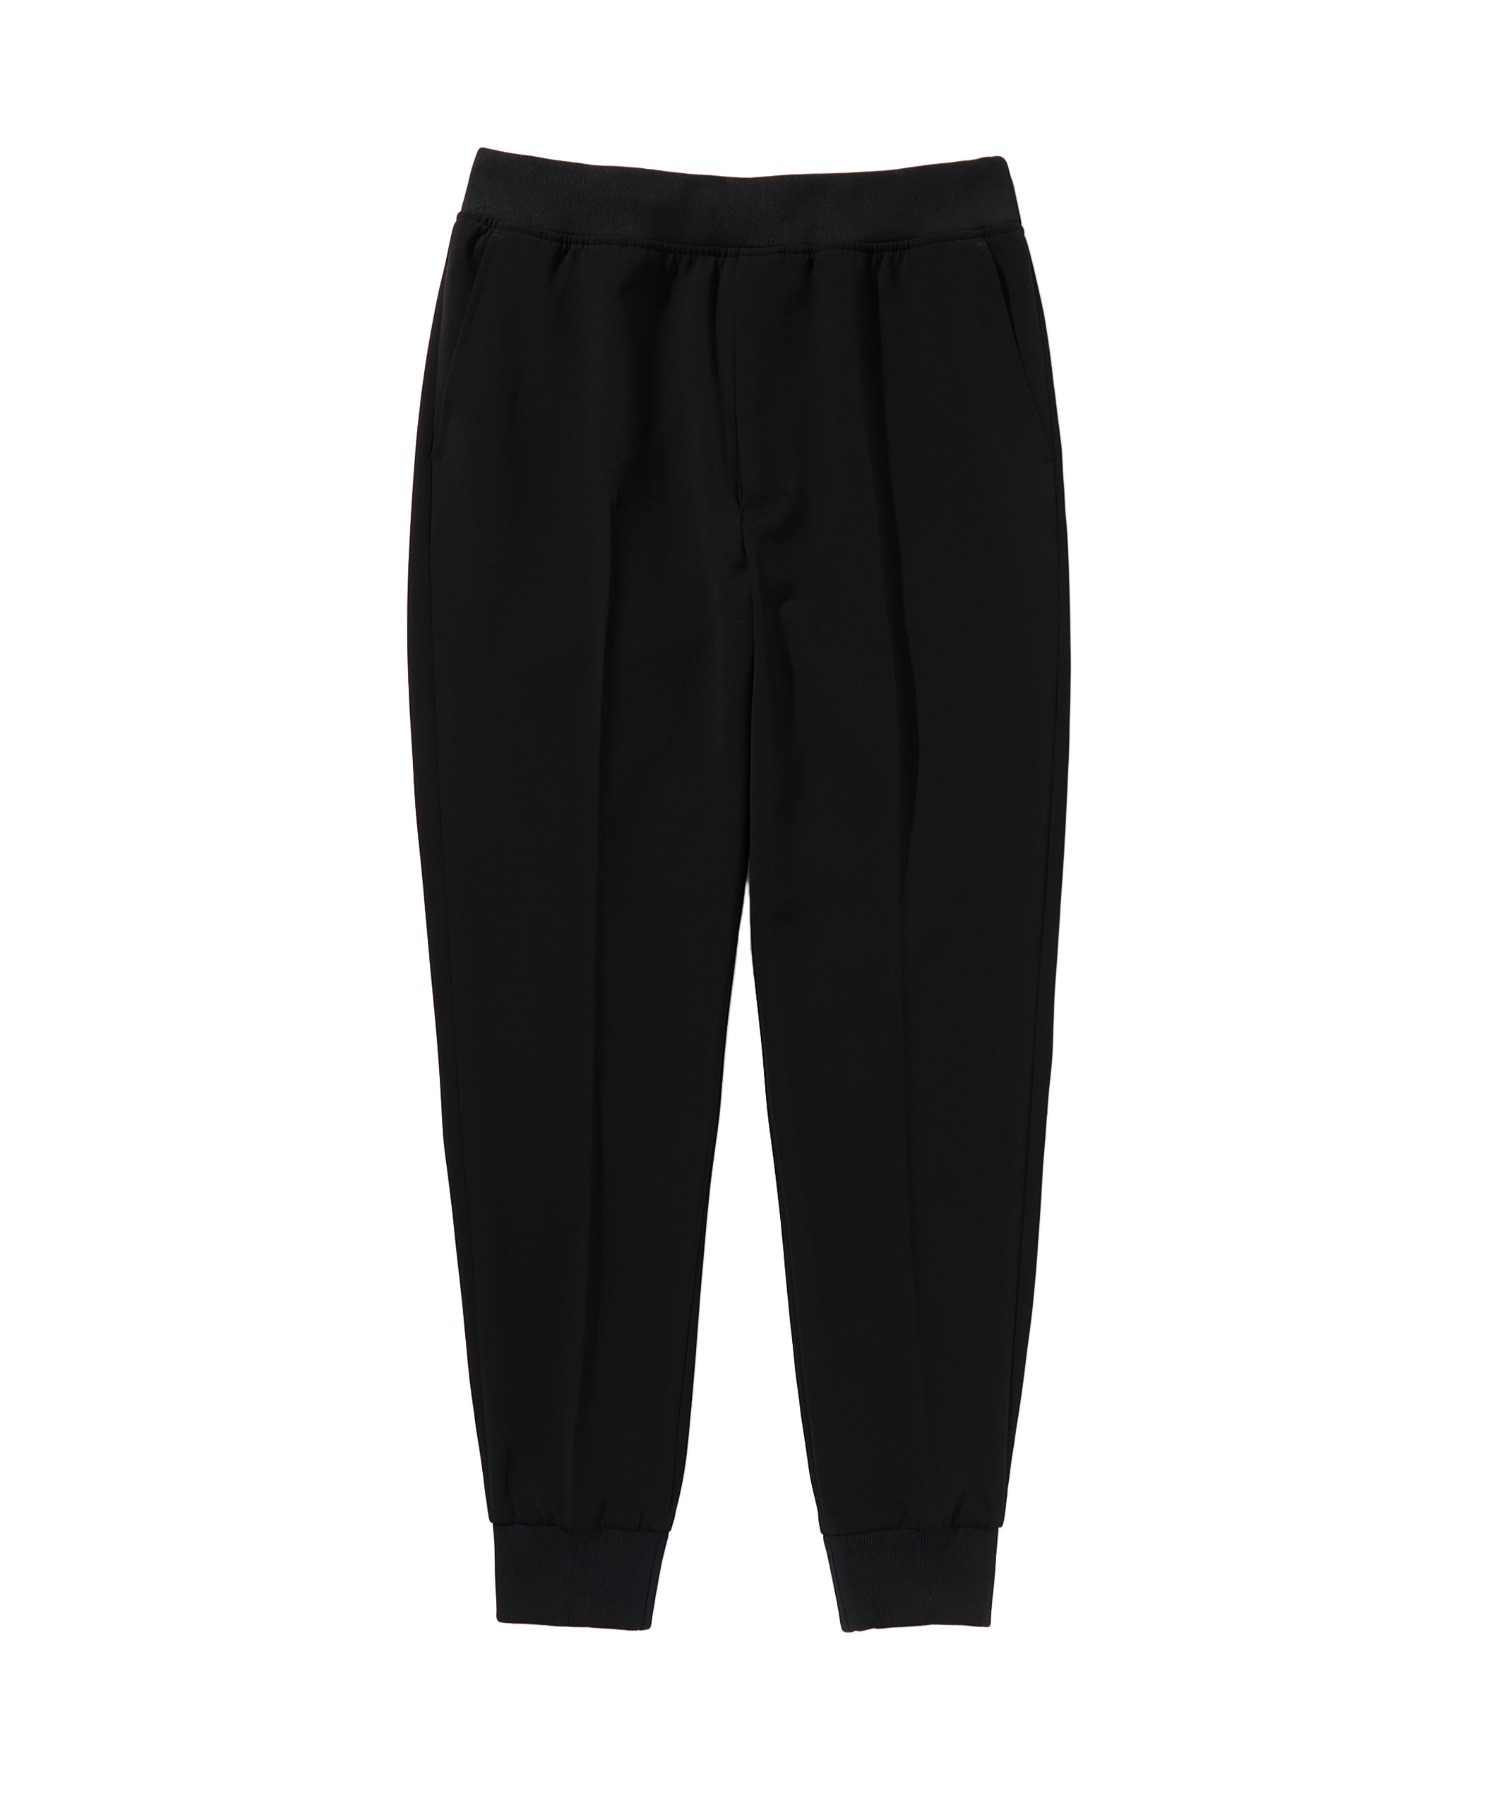 SPRING2020 RIBBED EASY PANTS